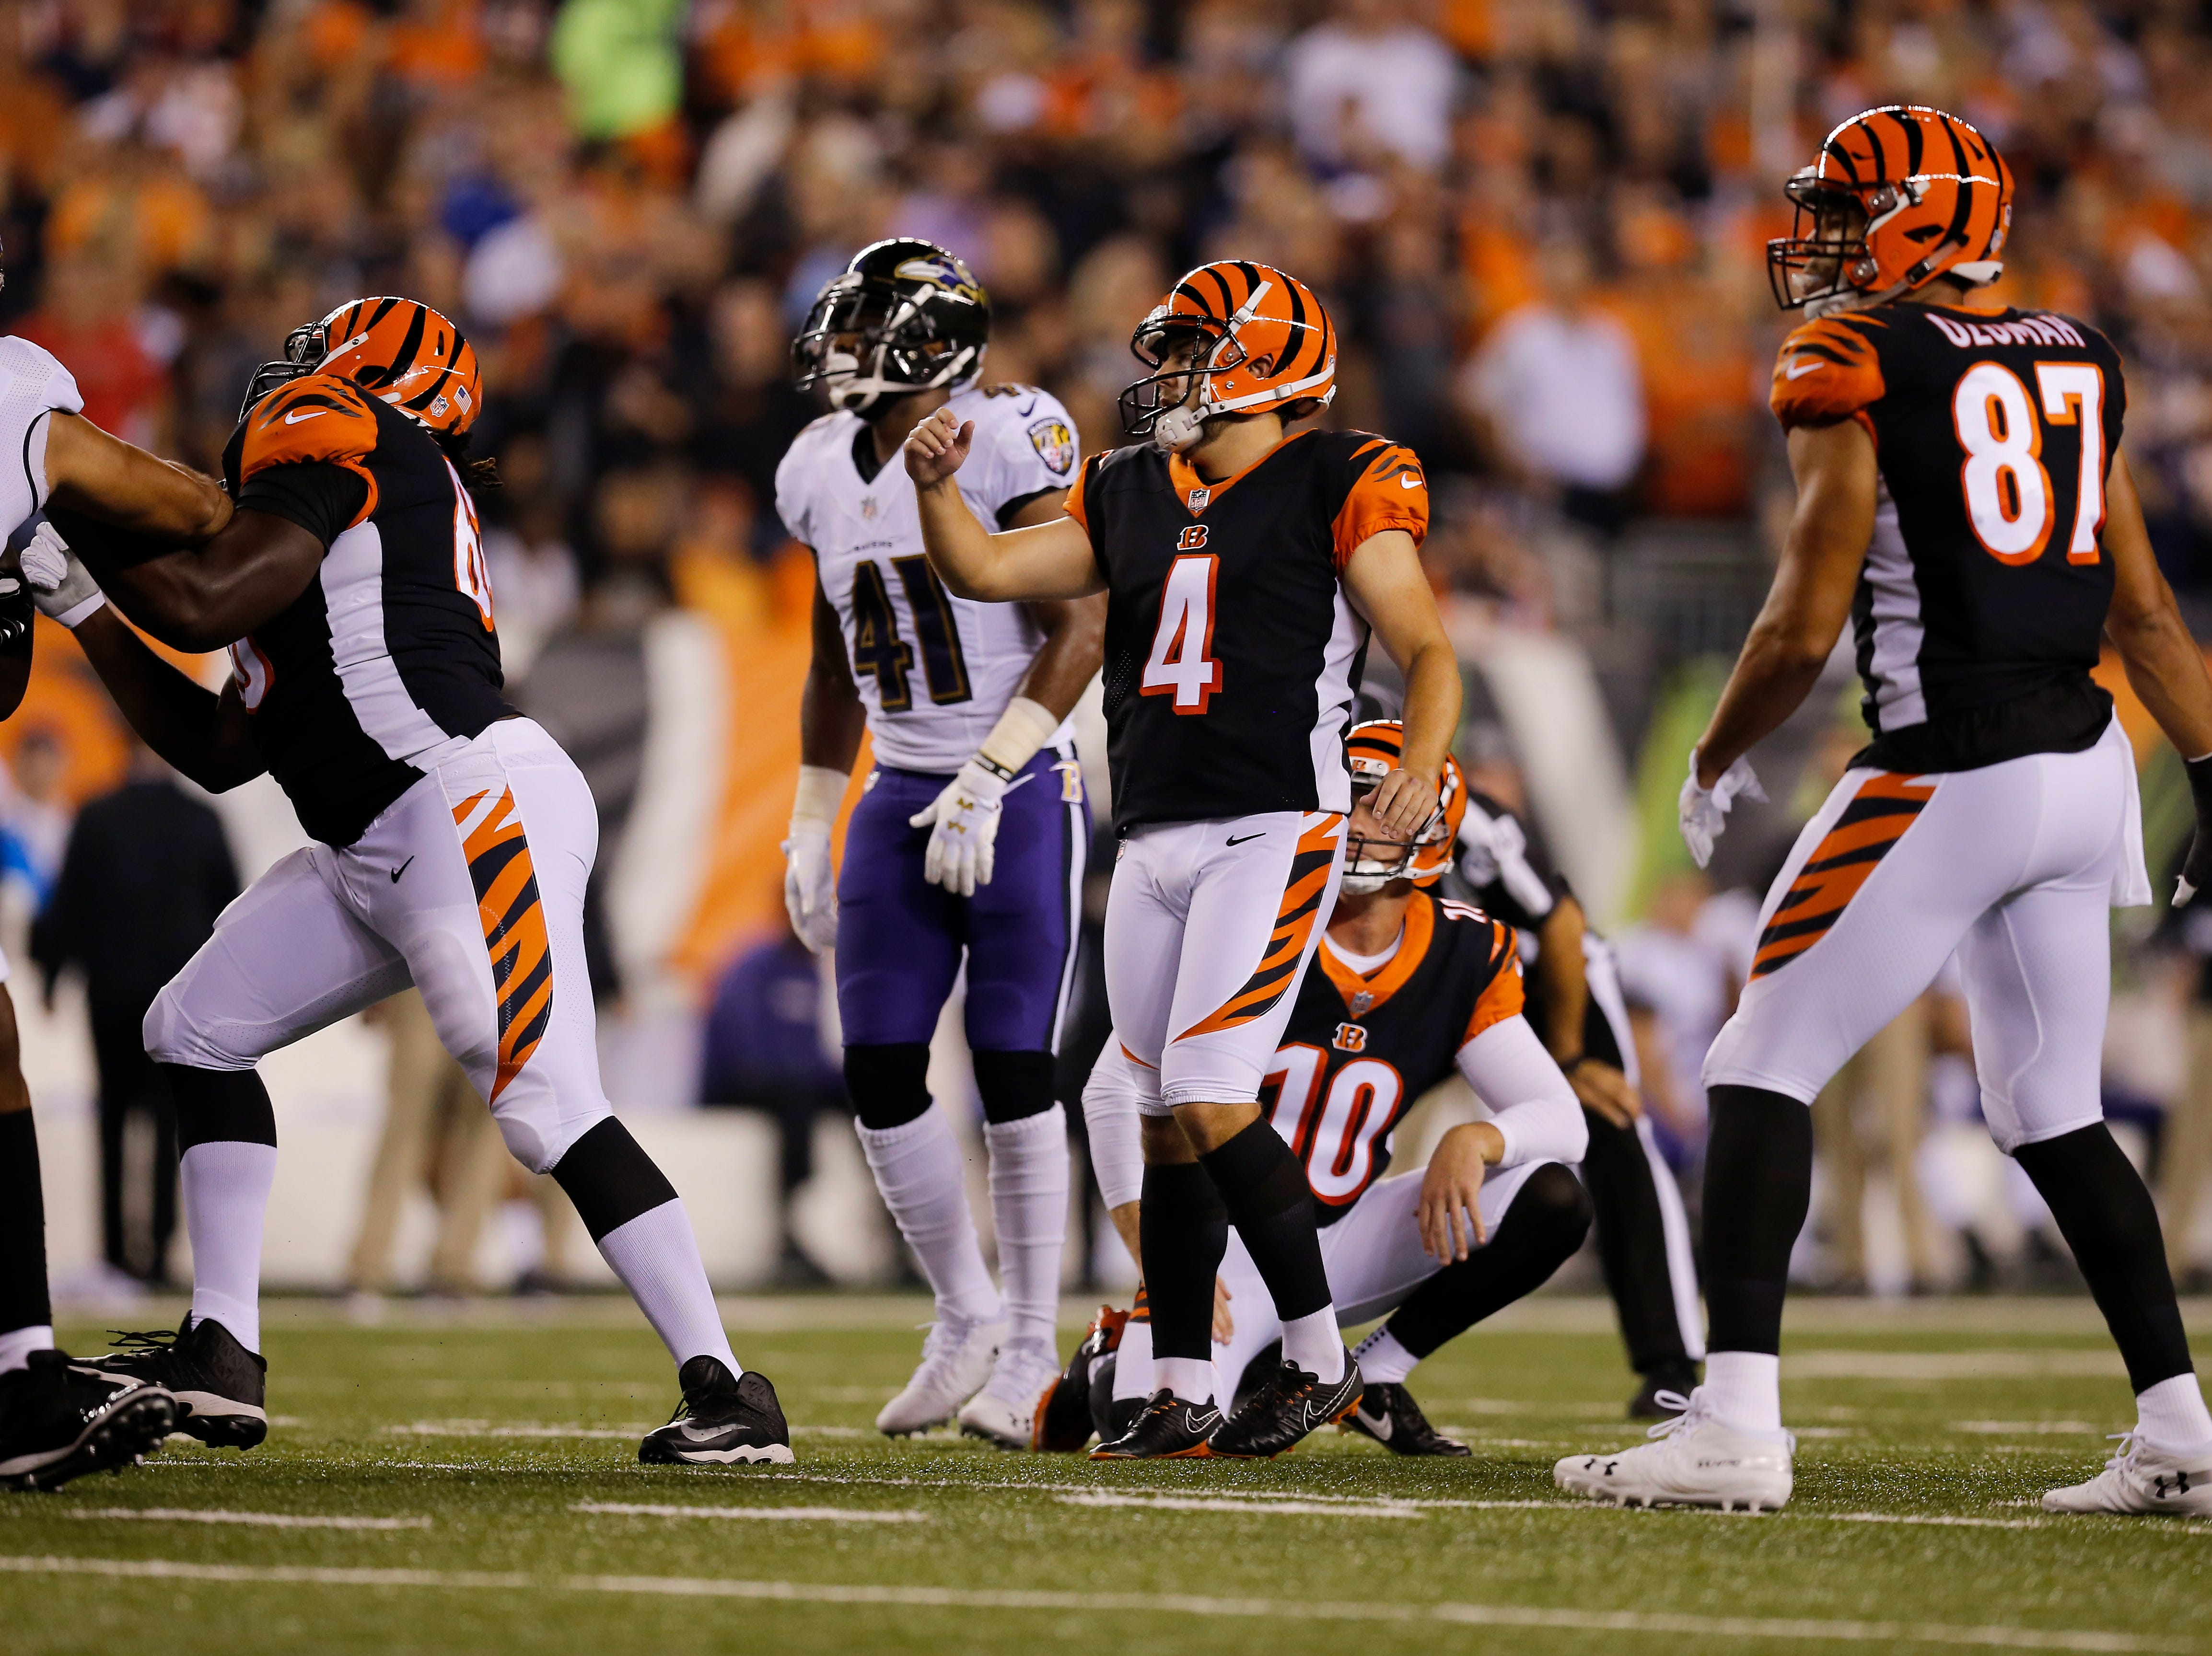 Cincinnati Bengals kicker Randy Bullock (4) follows through on an extra point kick in the first quarter of the NFL Week 2 game between the Cincinnati Bengals and the Baltimore Ravens at Paul Brown Stadium in downtown Cincinnati on Thursday, Sept. 13, 2018. The Bengals led 28-14 at halftime.